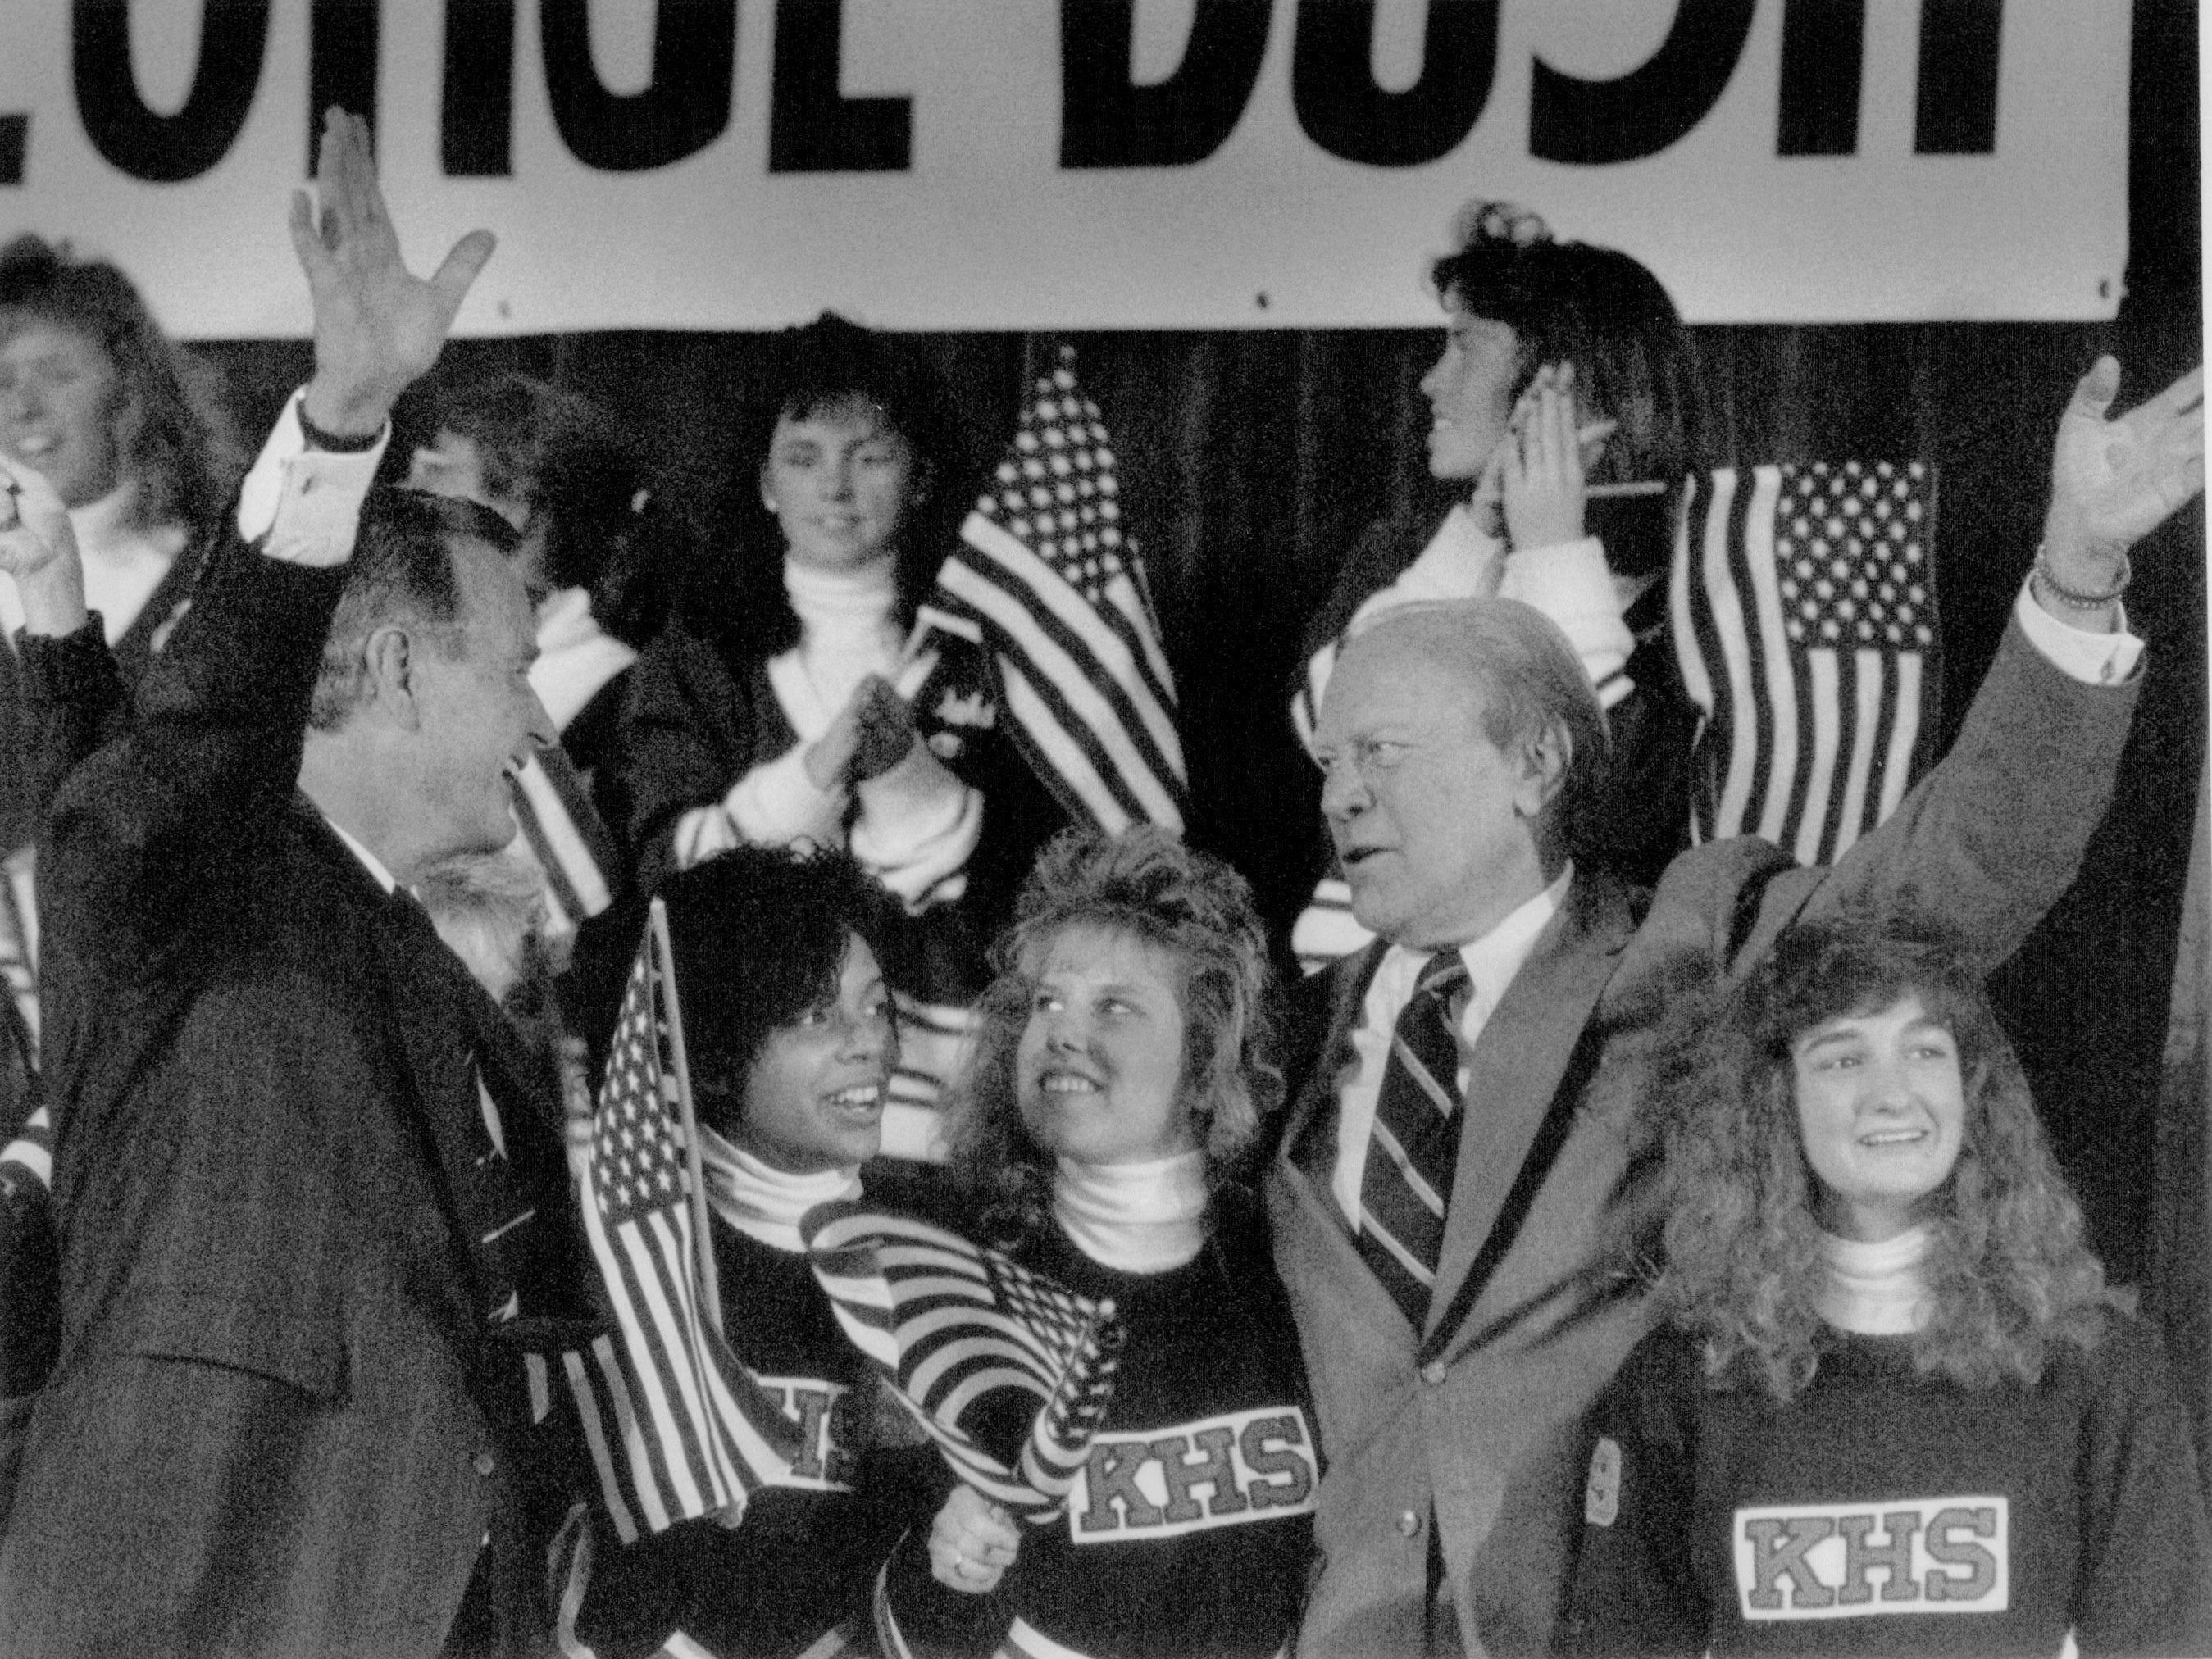 Royal Oak's Kimball HS cheerleaders watch as President Gerald Ford and Vice President George Bush wave to the crowd at Royal Oak's Kimball High School in October 1988.